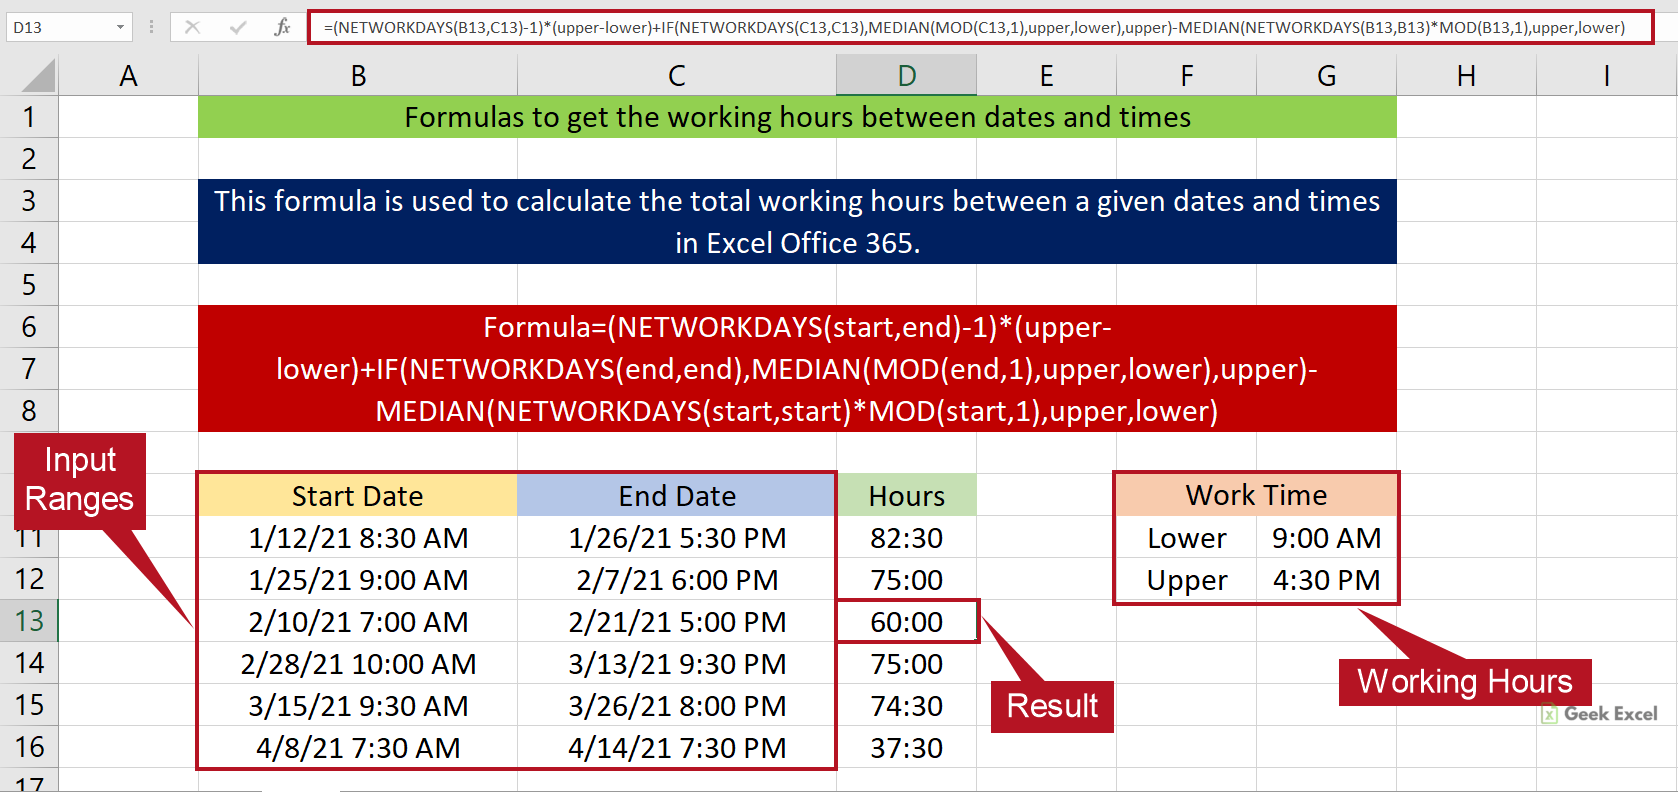 Excel Formulas to Calculate the Work Hours between Dates and Times